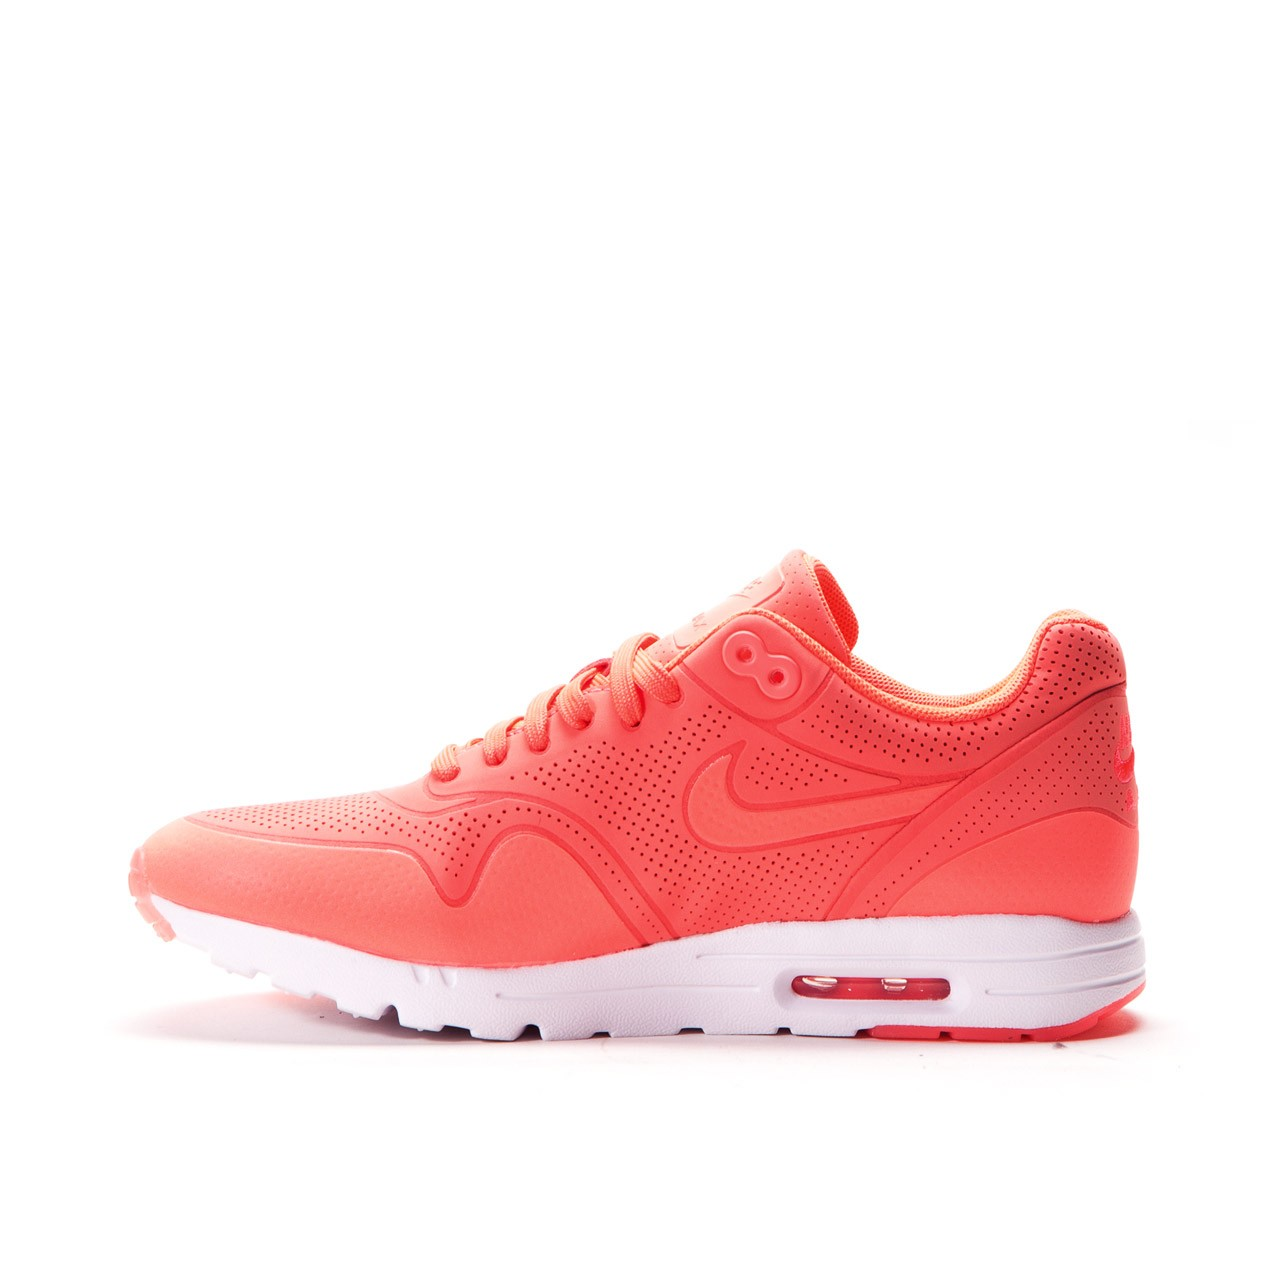 nike women 39 s air max 1 ultra moire hot lava white. Black Bedroom Furniture Sets. Home Design Ideas